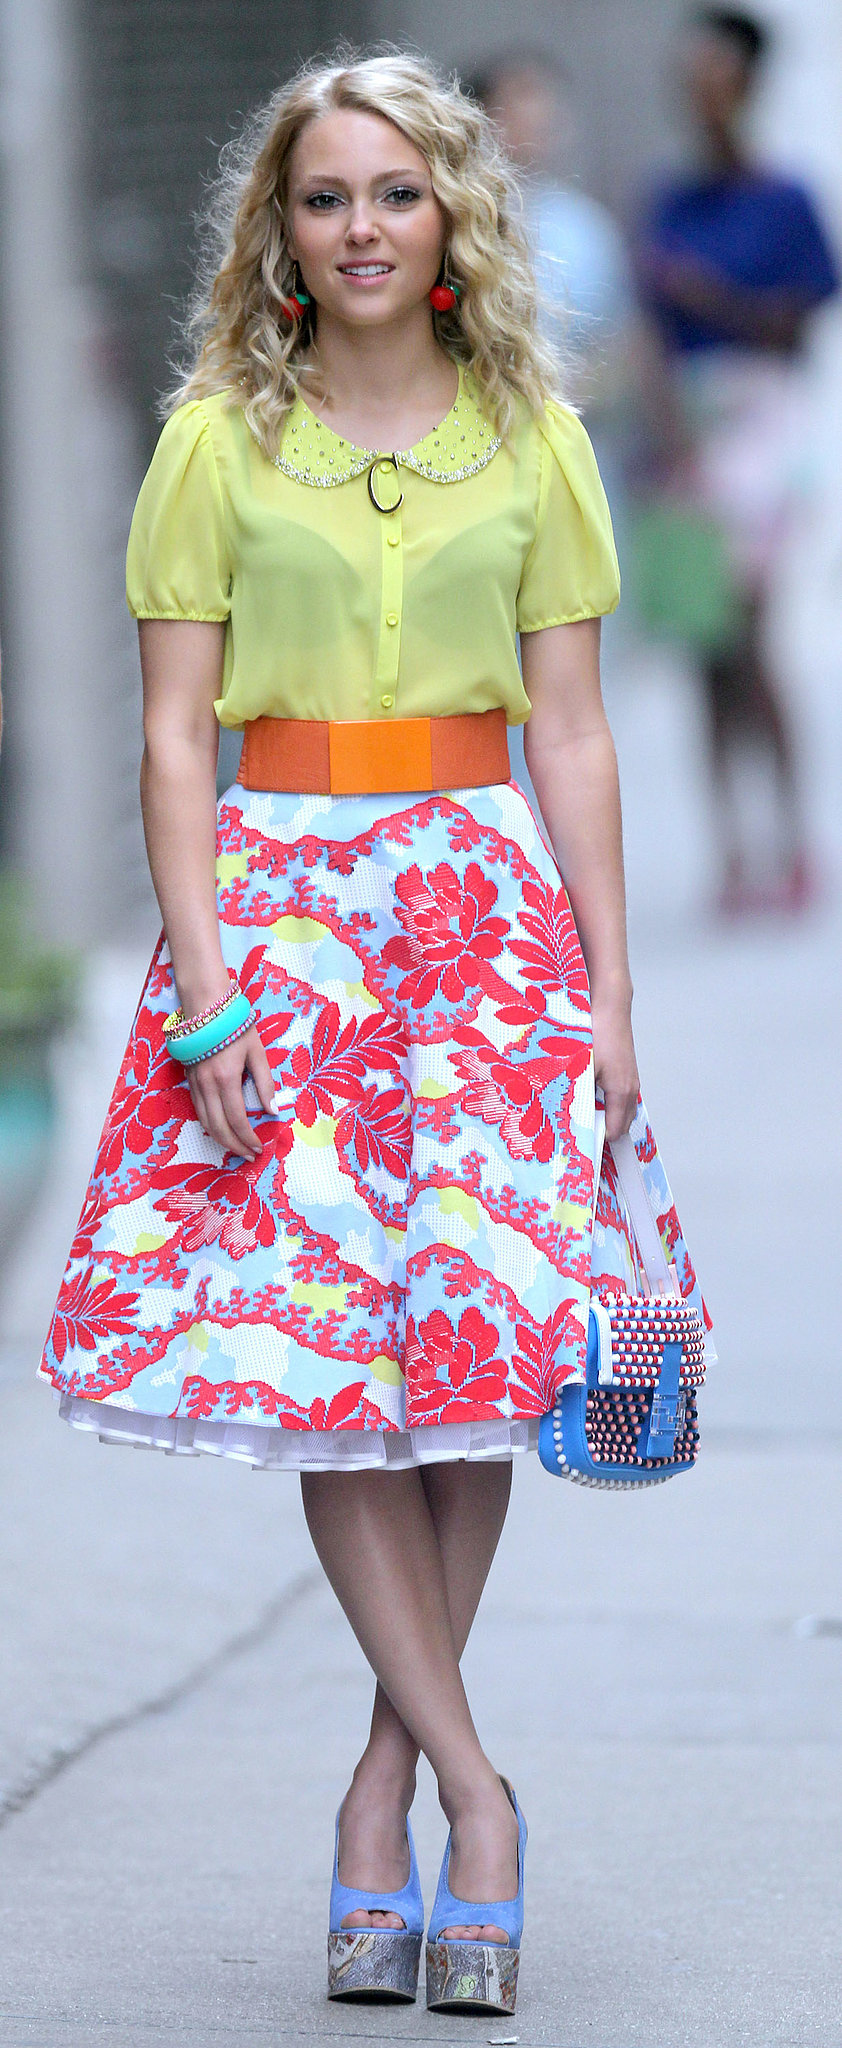 Carrie showed off her Summer brights in a sunny Peter Pan collar top, a printed Topshop skirt, and Carven platform wedges. Pair this blooming Modcloth midi ($70) with a pretty pastel blouse for your next soiree.